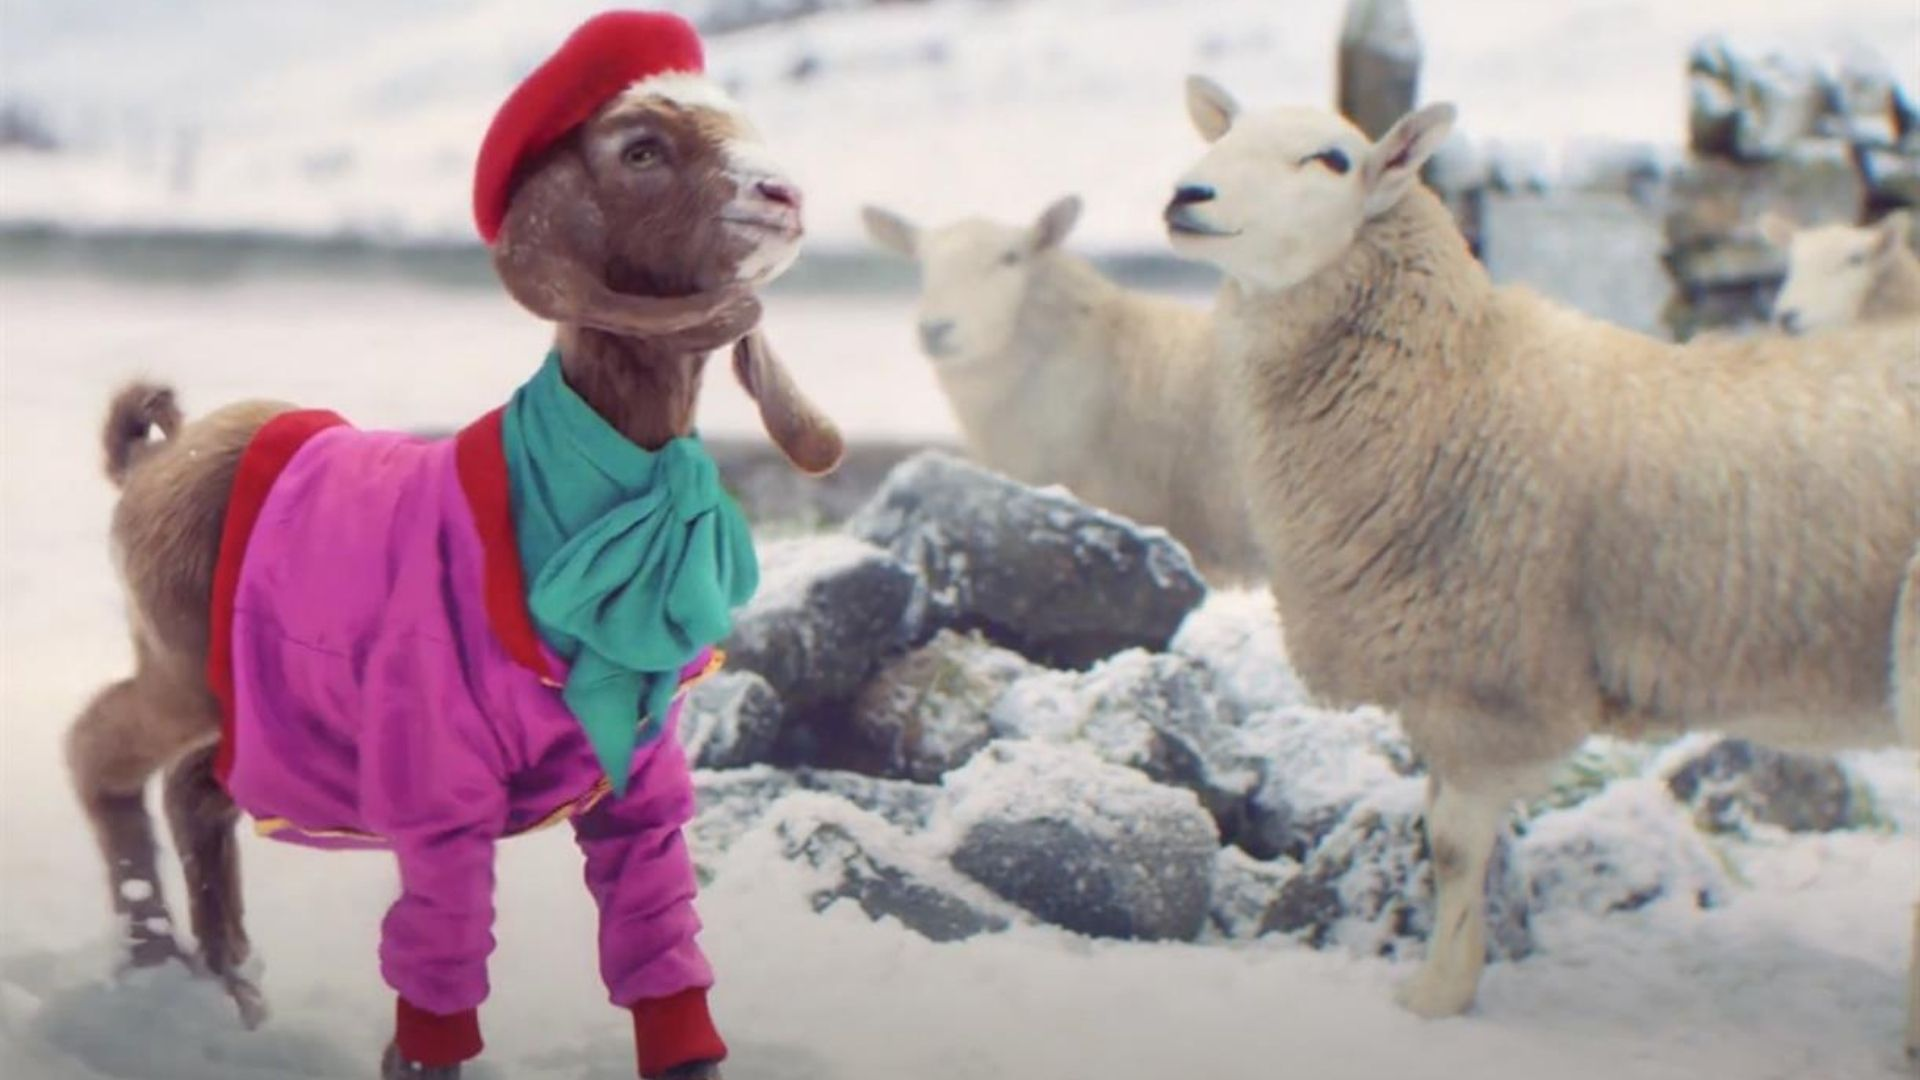 Still from the TK Maxx Christmas advert, featuring a stylish animated goat and a flock of sheep